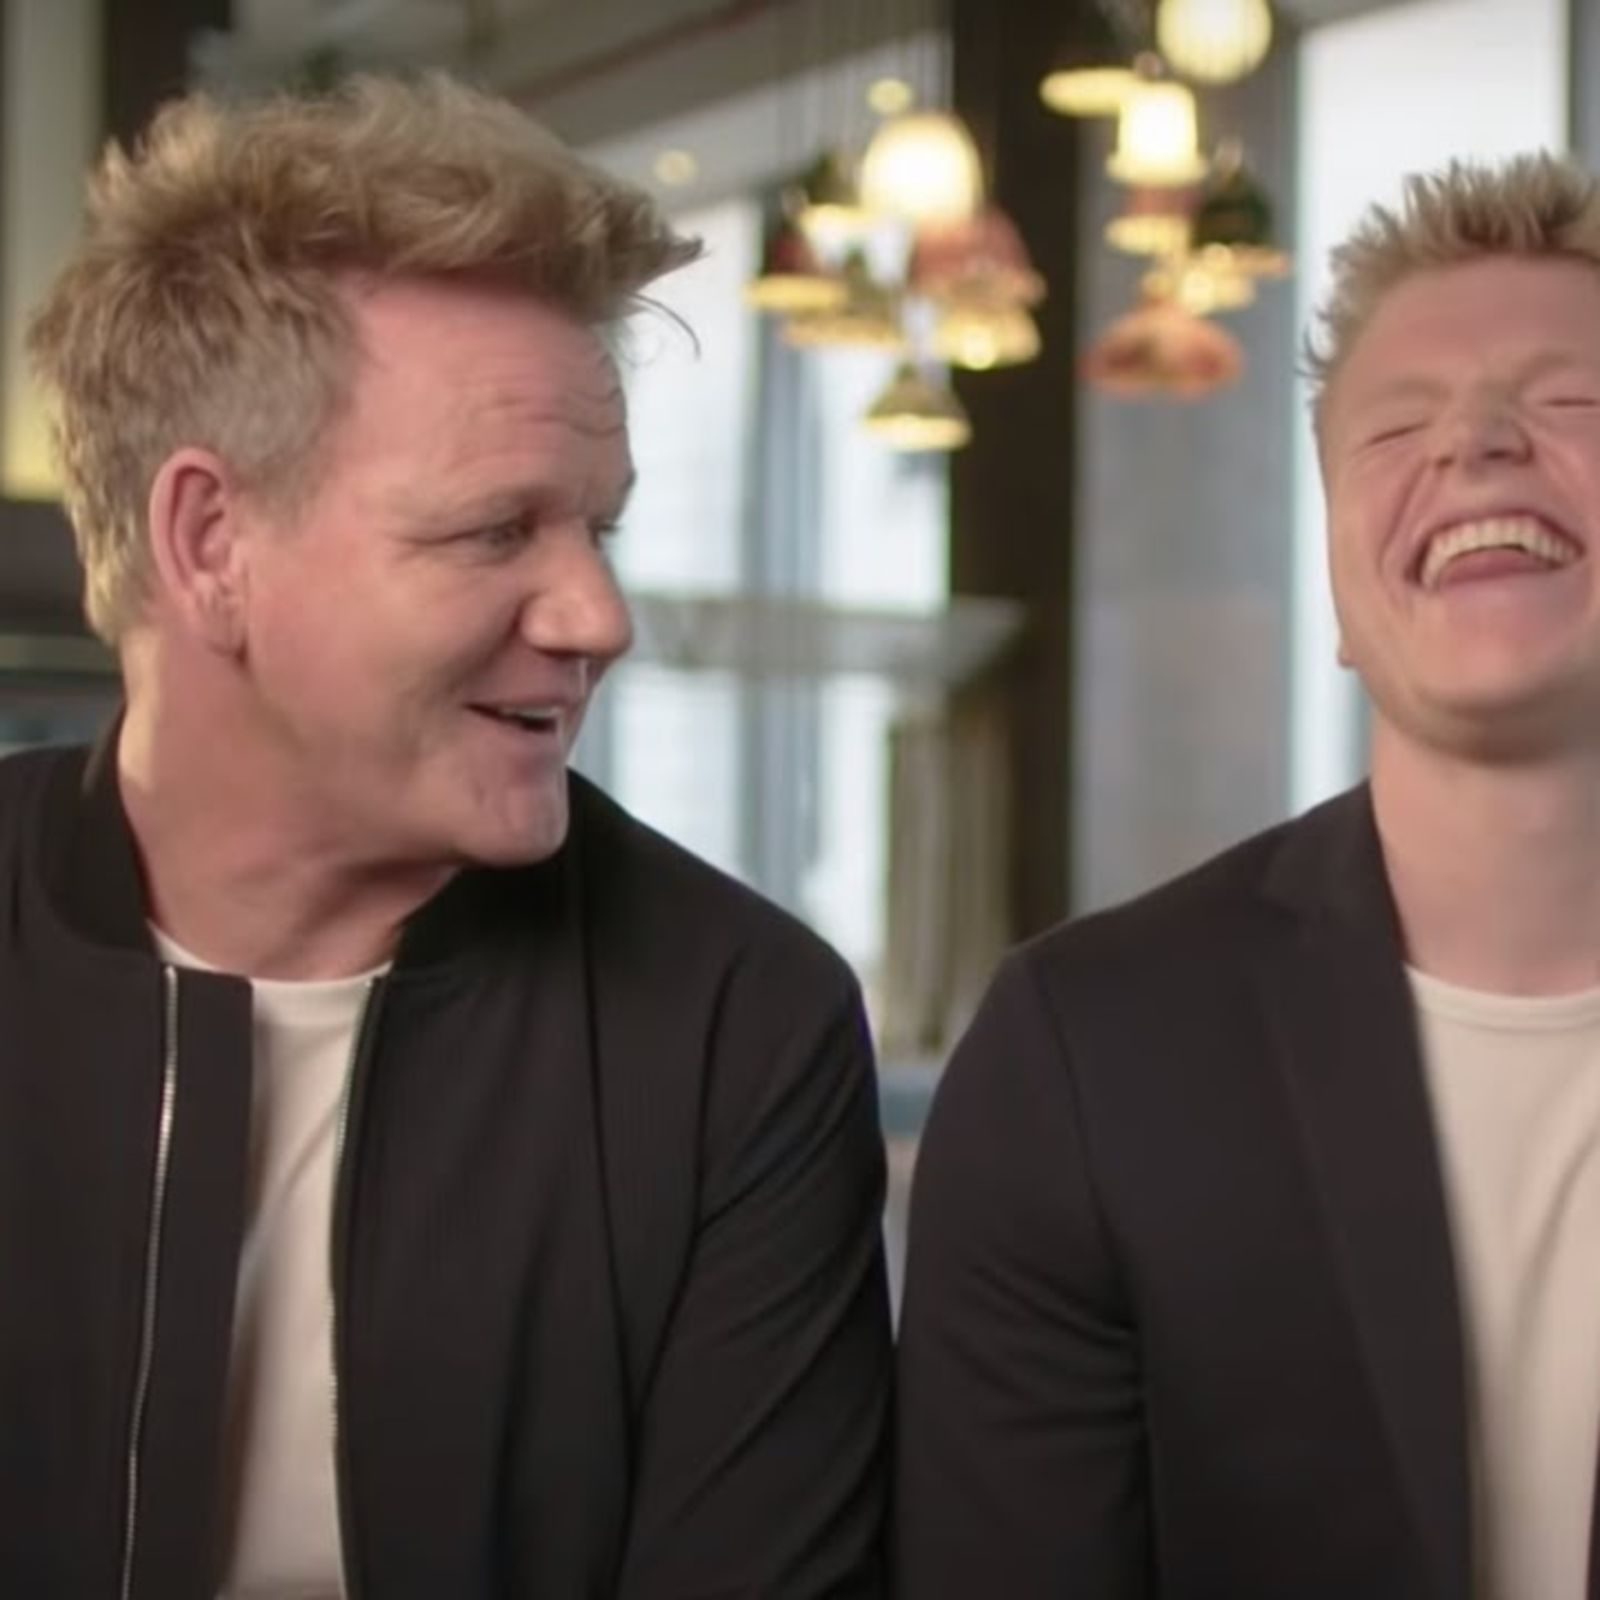 Gordon Ramsay on what keeps him up at night as a parent